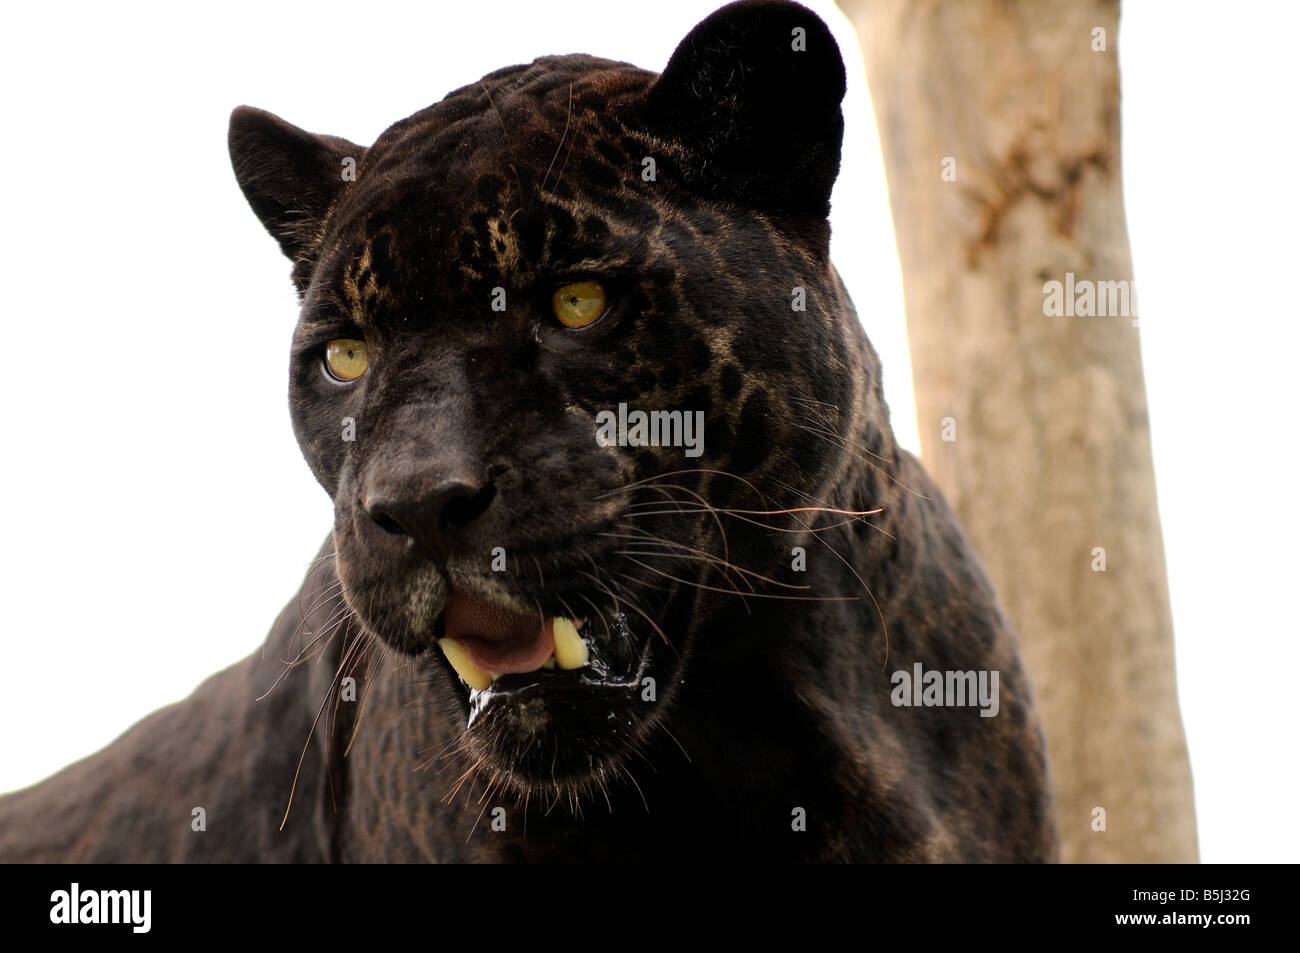 Black jaguar - Stock Image